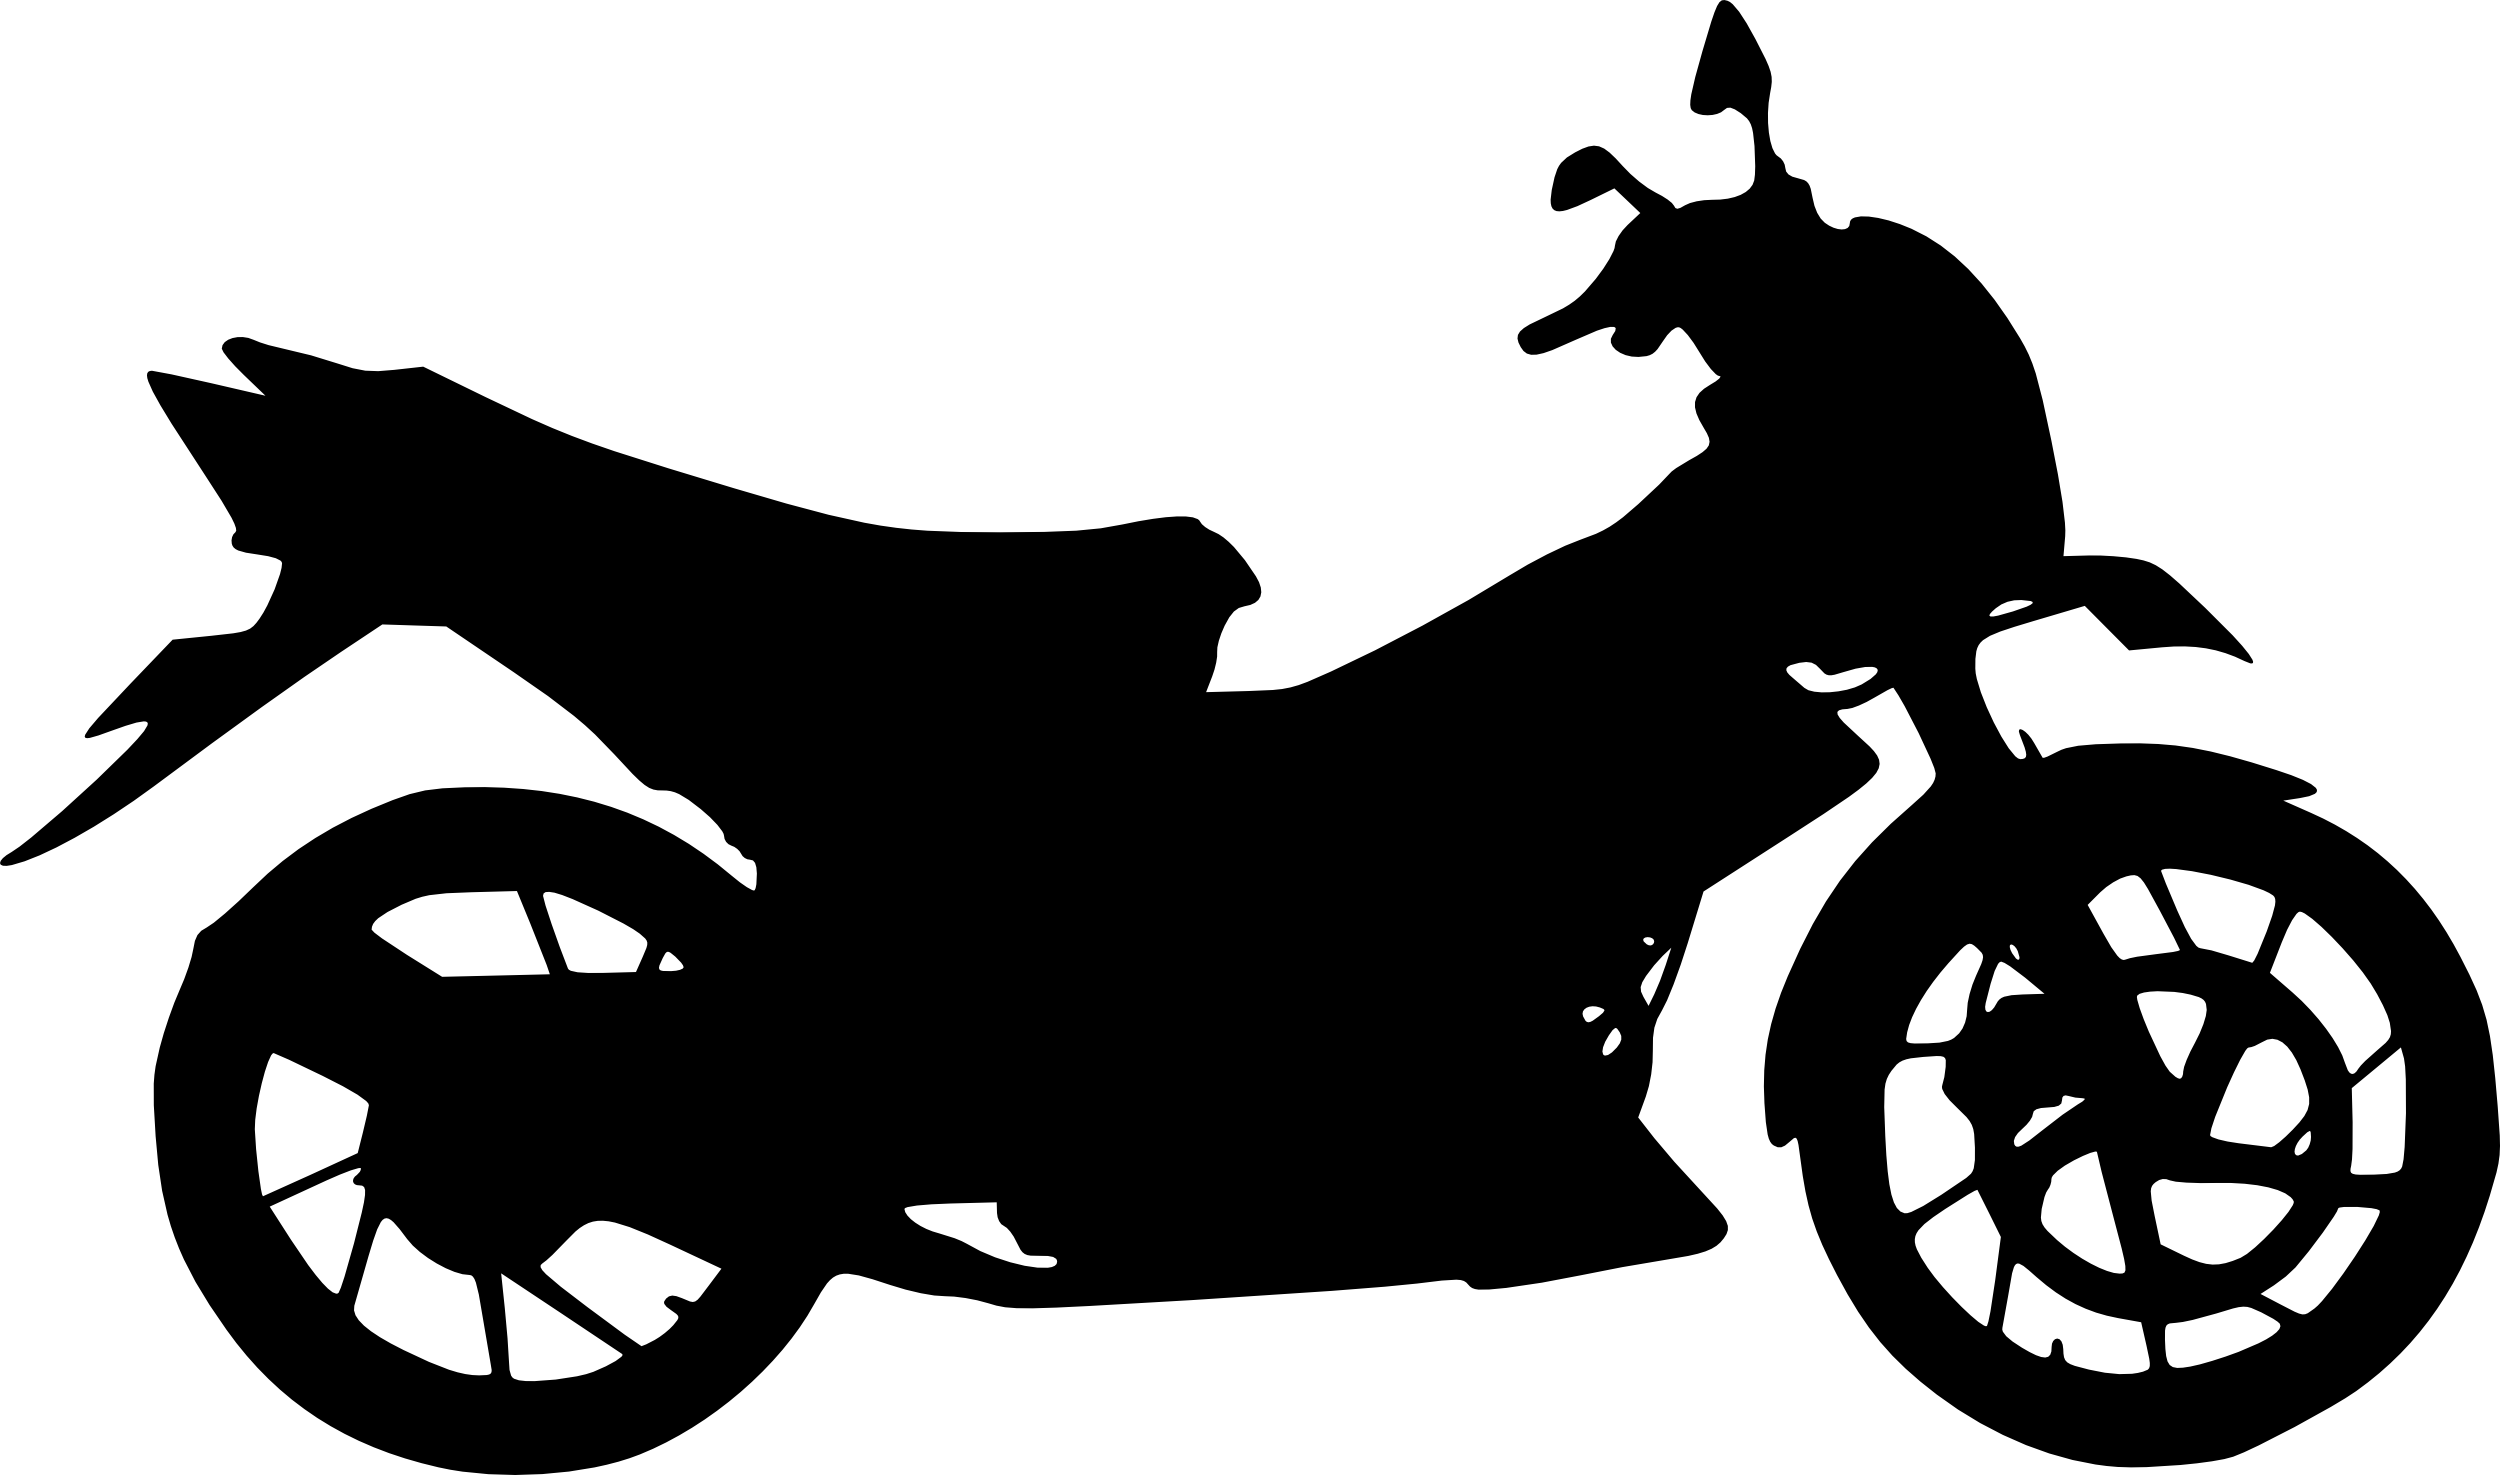 Clipart wedding motorcycle. Silhouette images at getdrawings